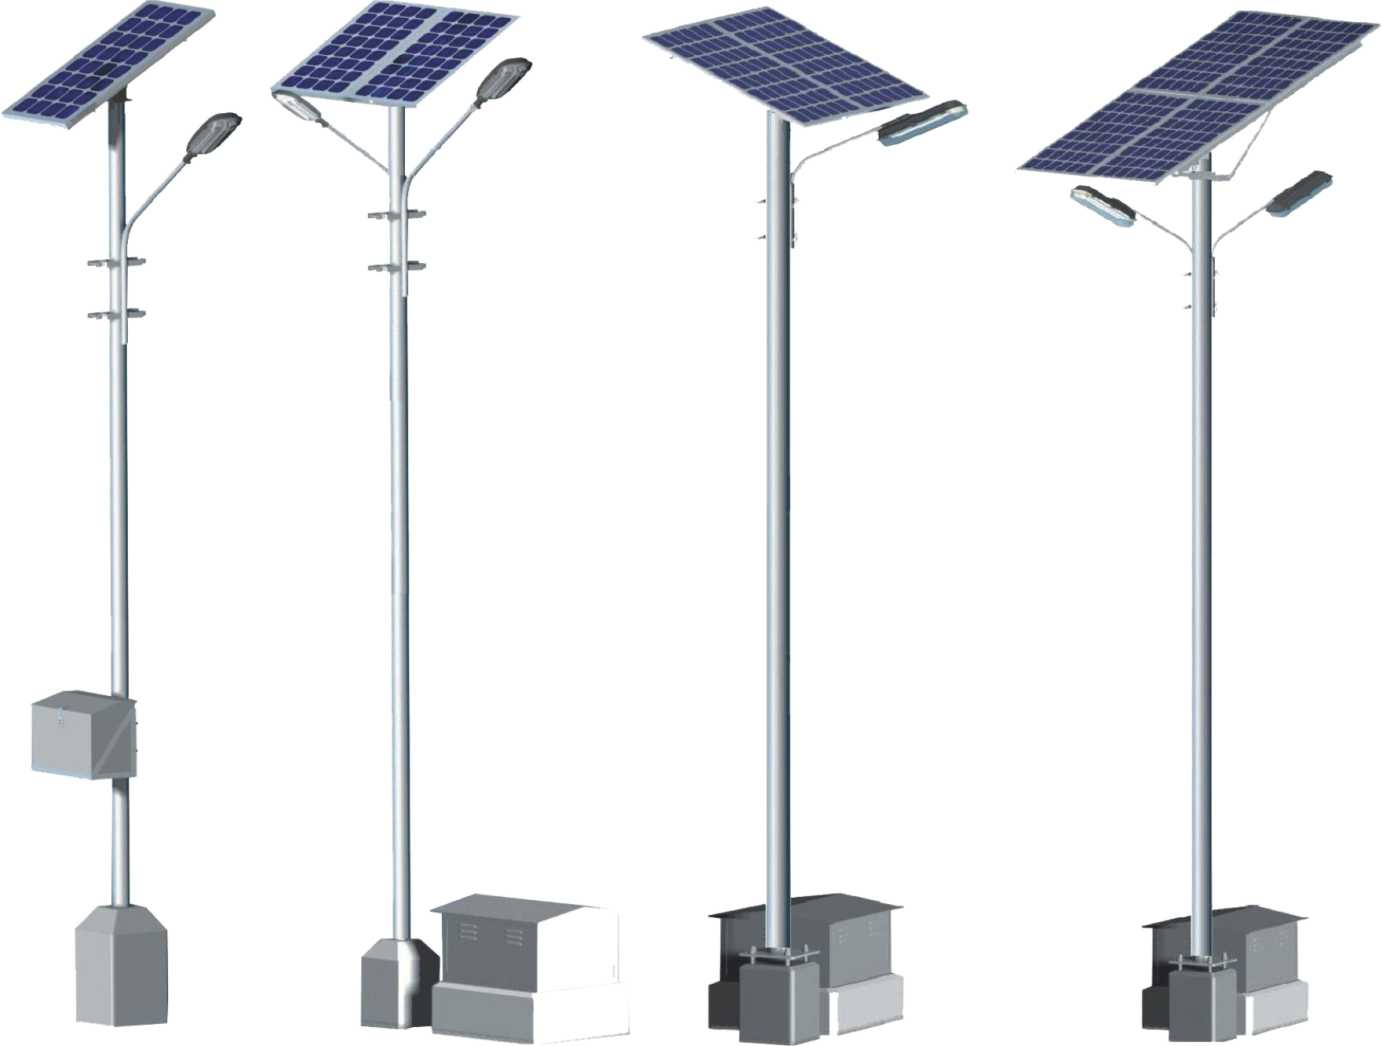 Aparupa Nursery Solar Lights Led Street Light Circuit India Lighting System